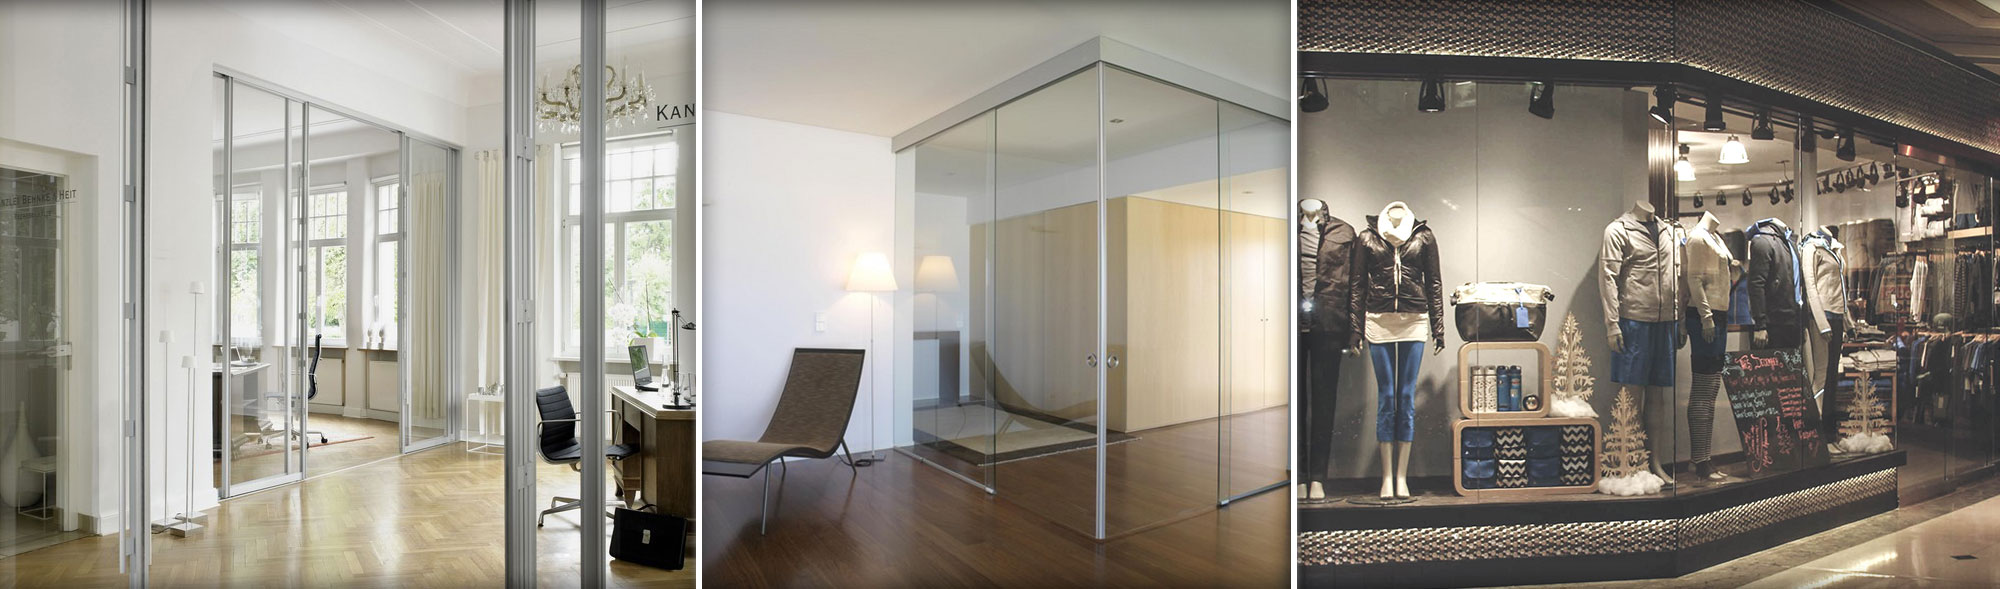 creative mirror shower of chicago mirrors shower doors glass interior glass